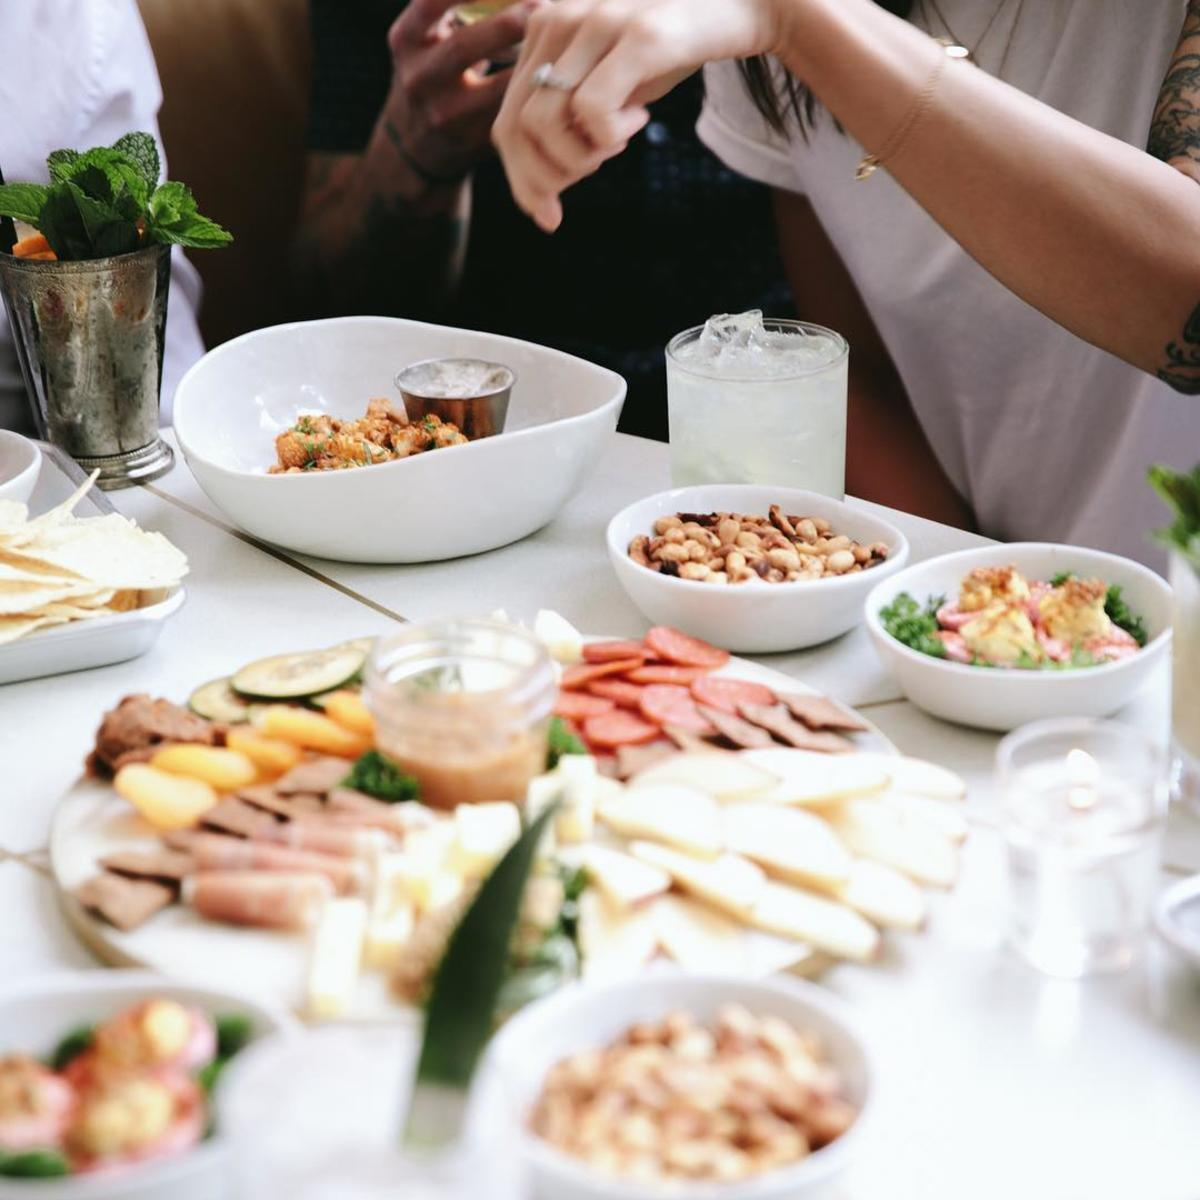 People sharing a charcuterie board and appetizers at The Public House in Bay City